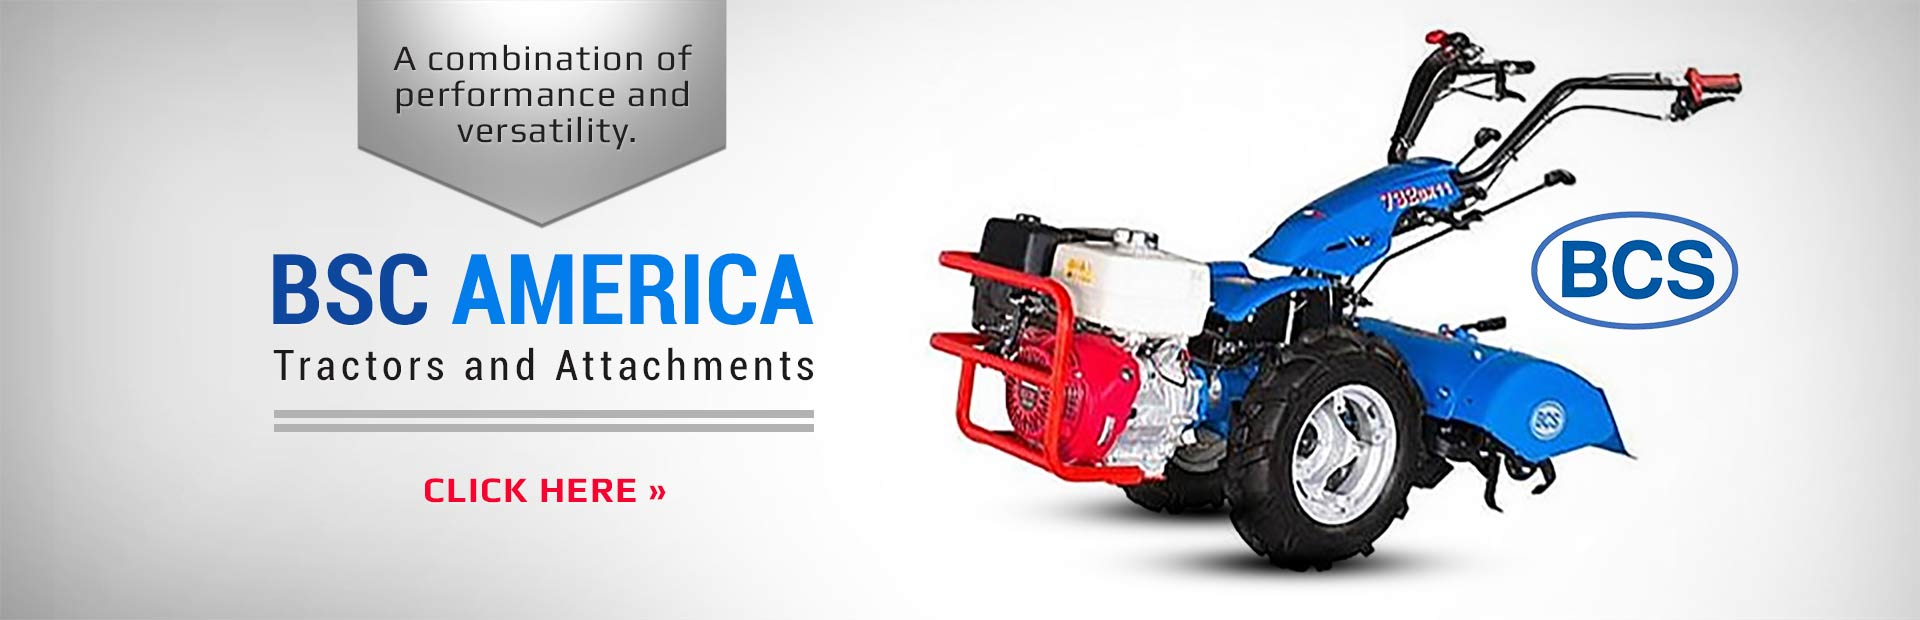 BSC America Tractors and Attachments: Click here to view the showcase!